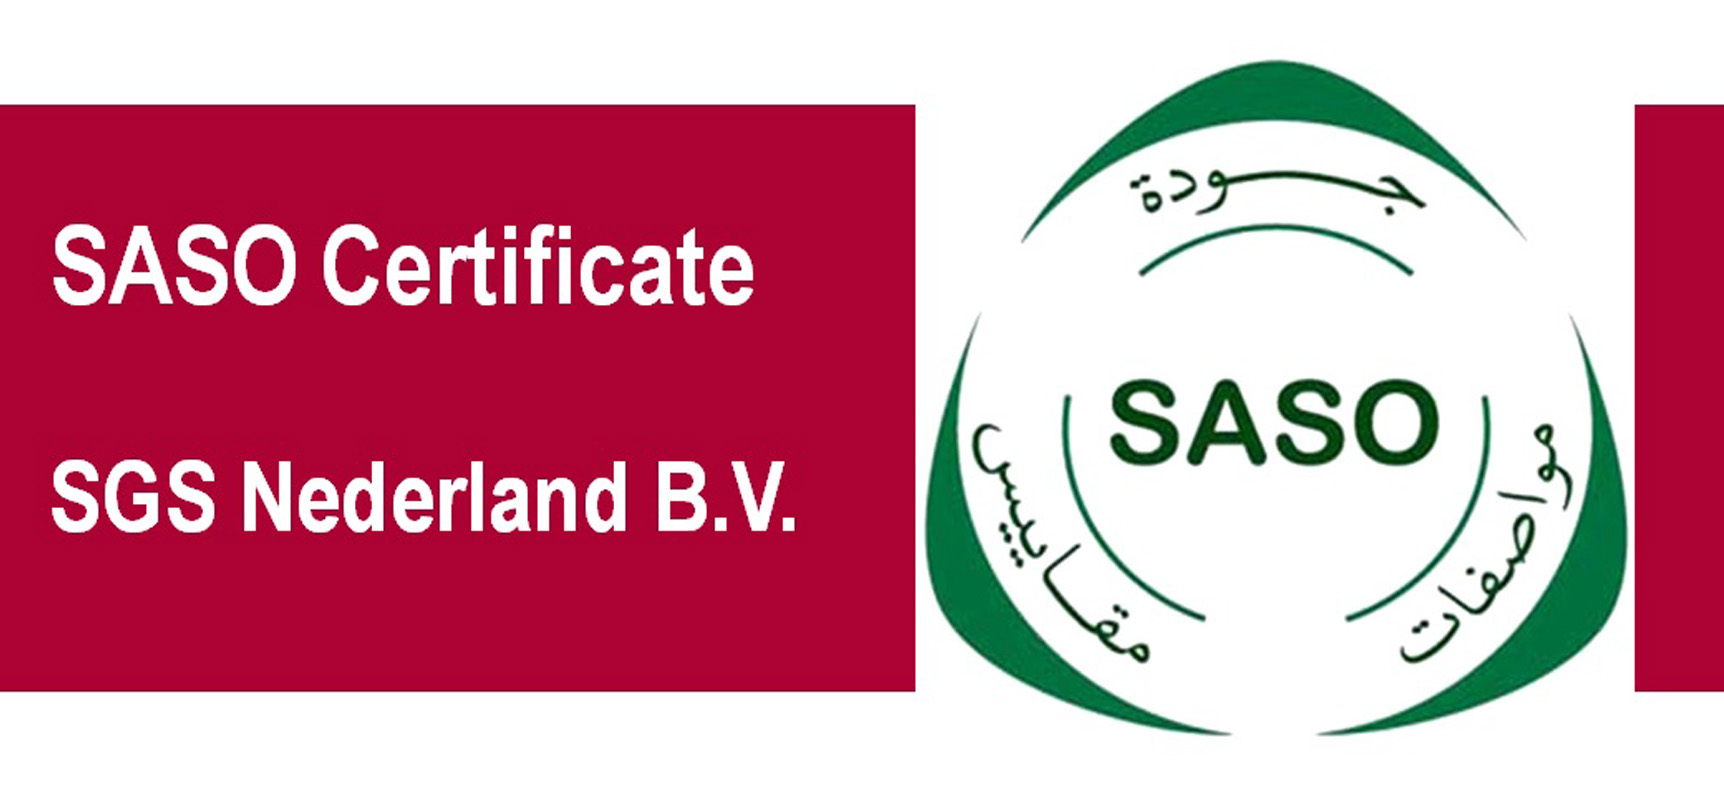 Rendisk is certified with SASO